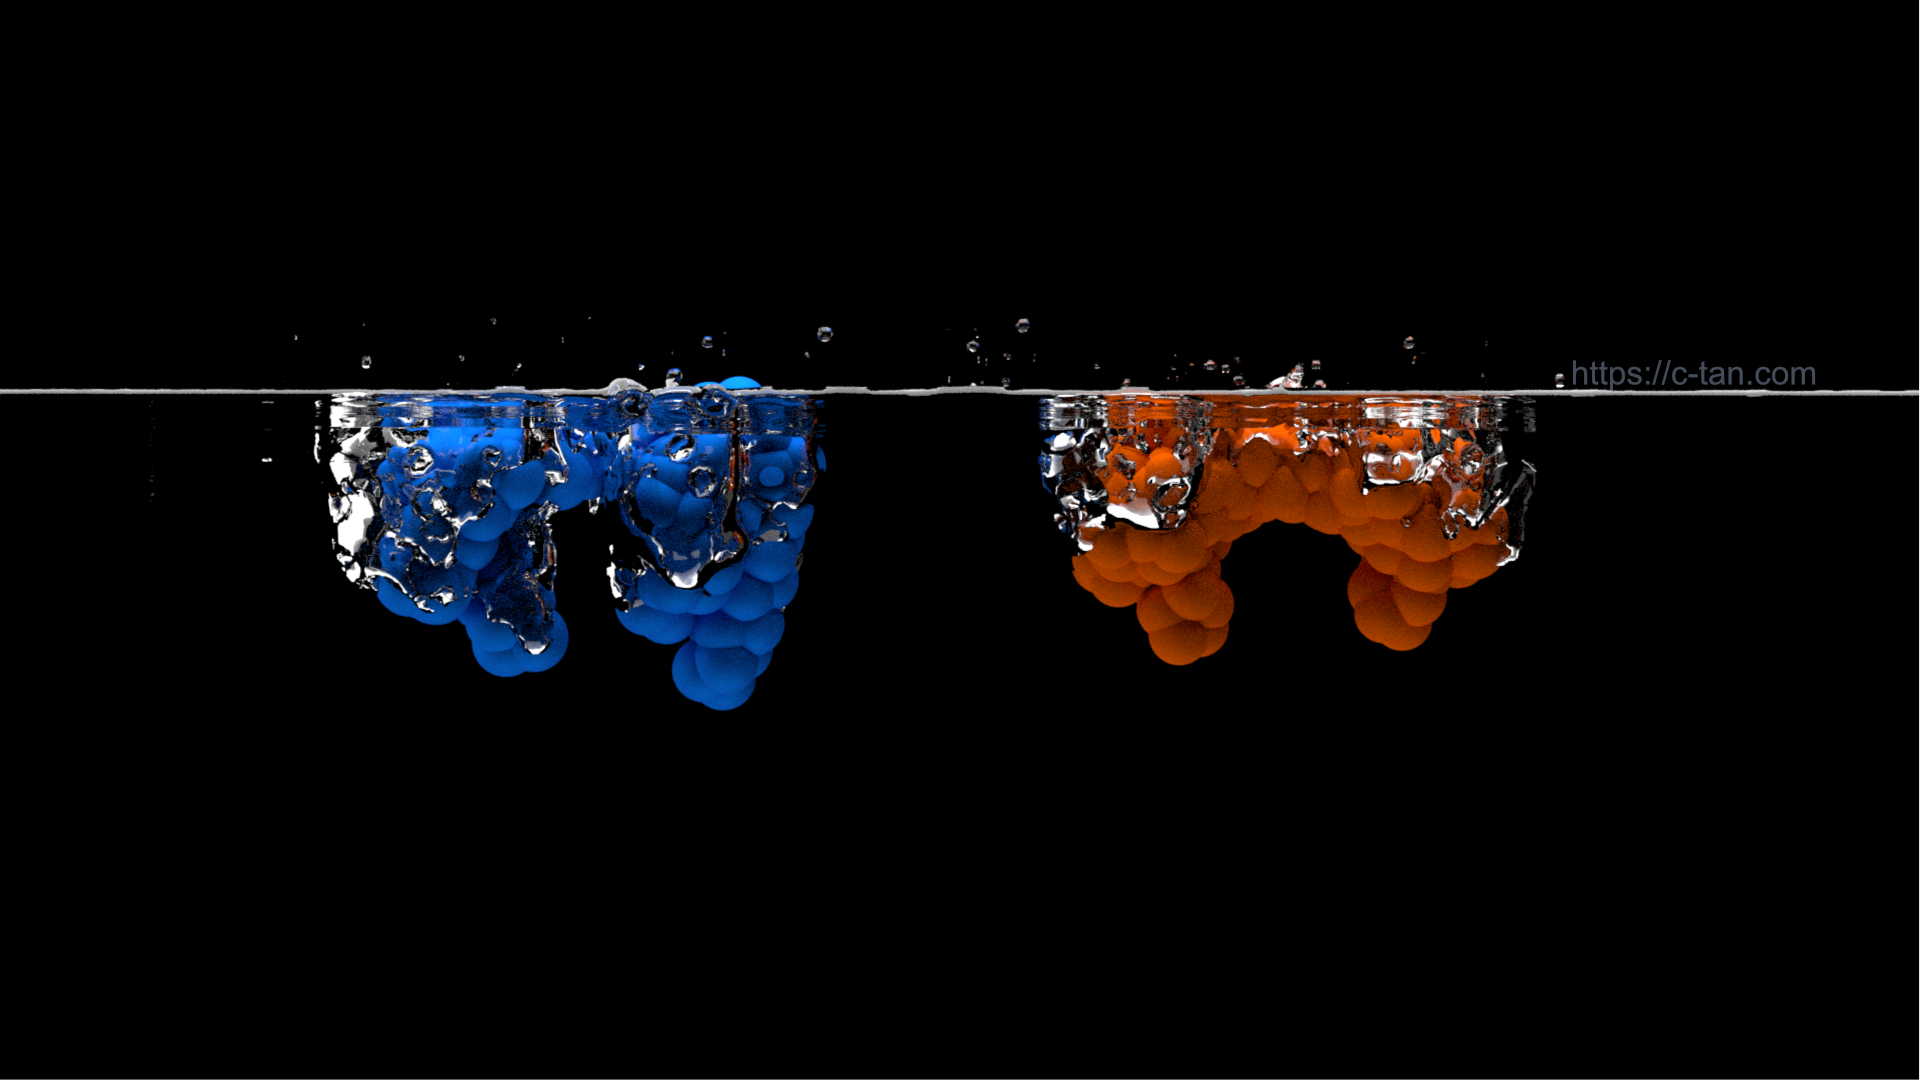 CG simulations of protein solvation.